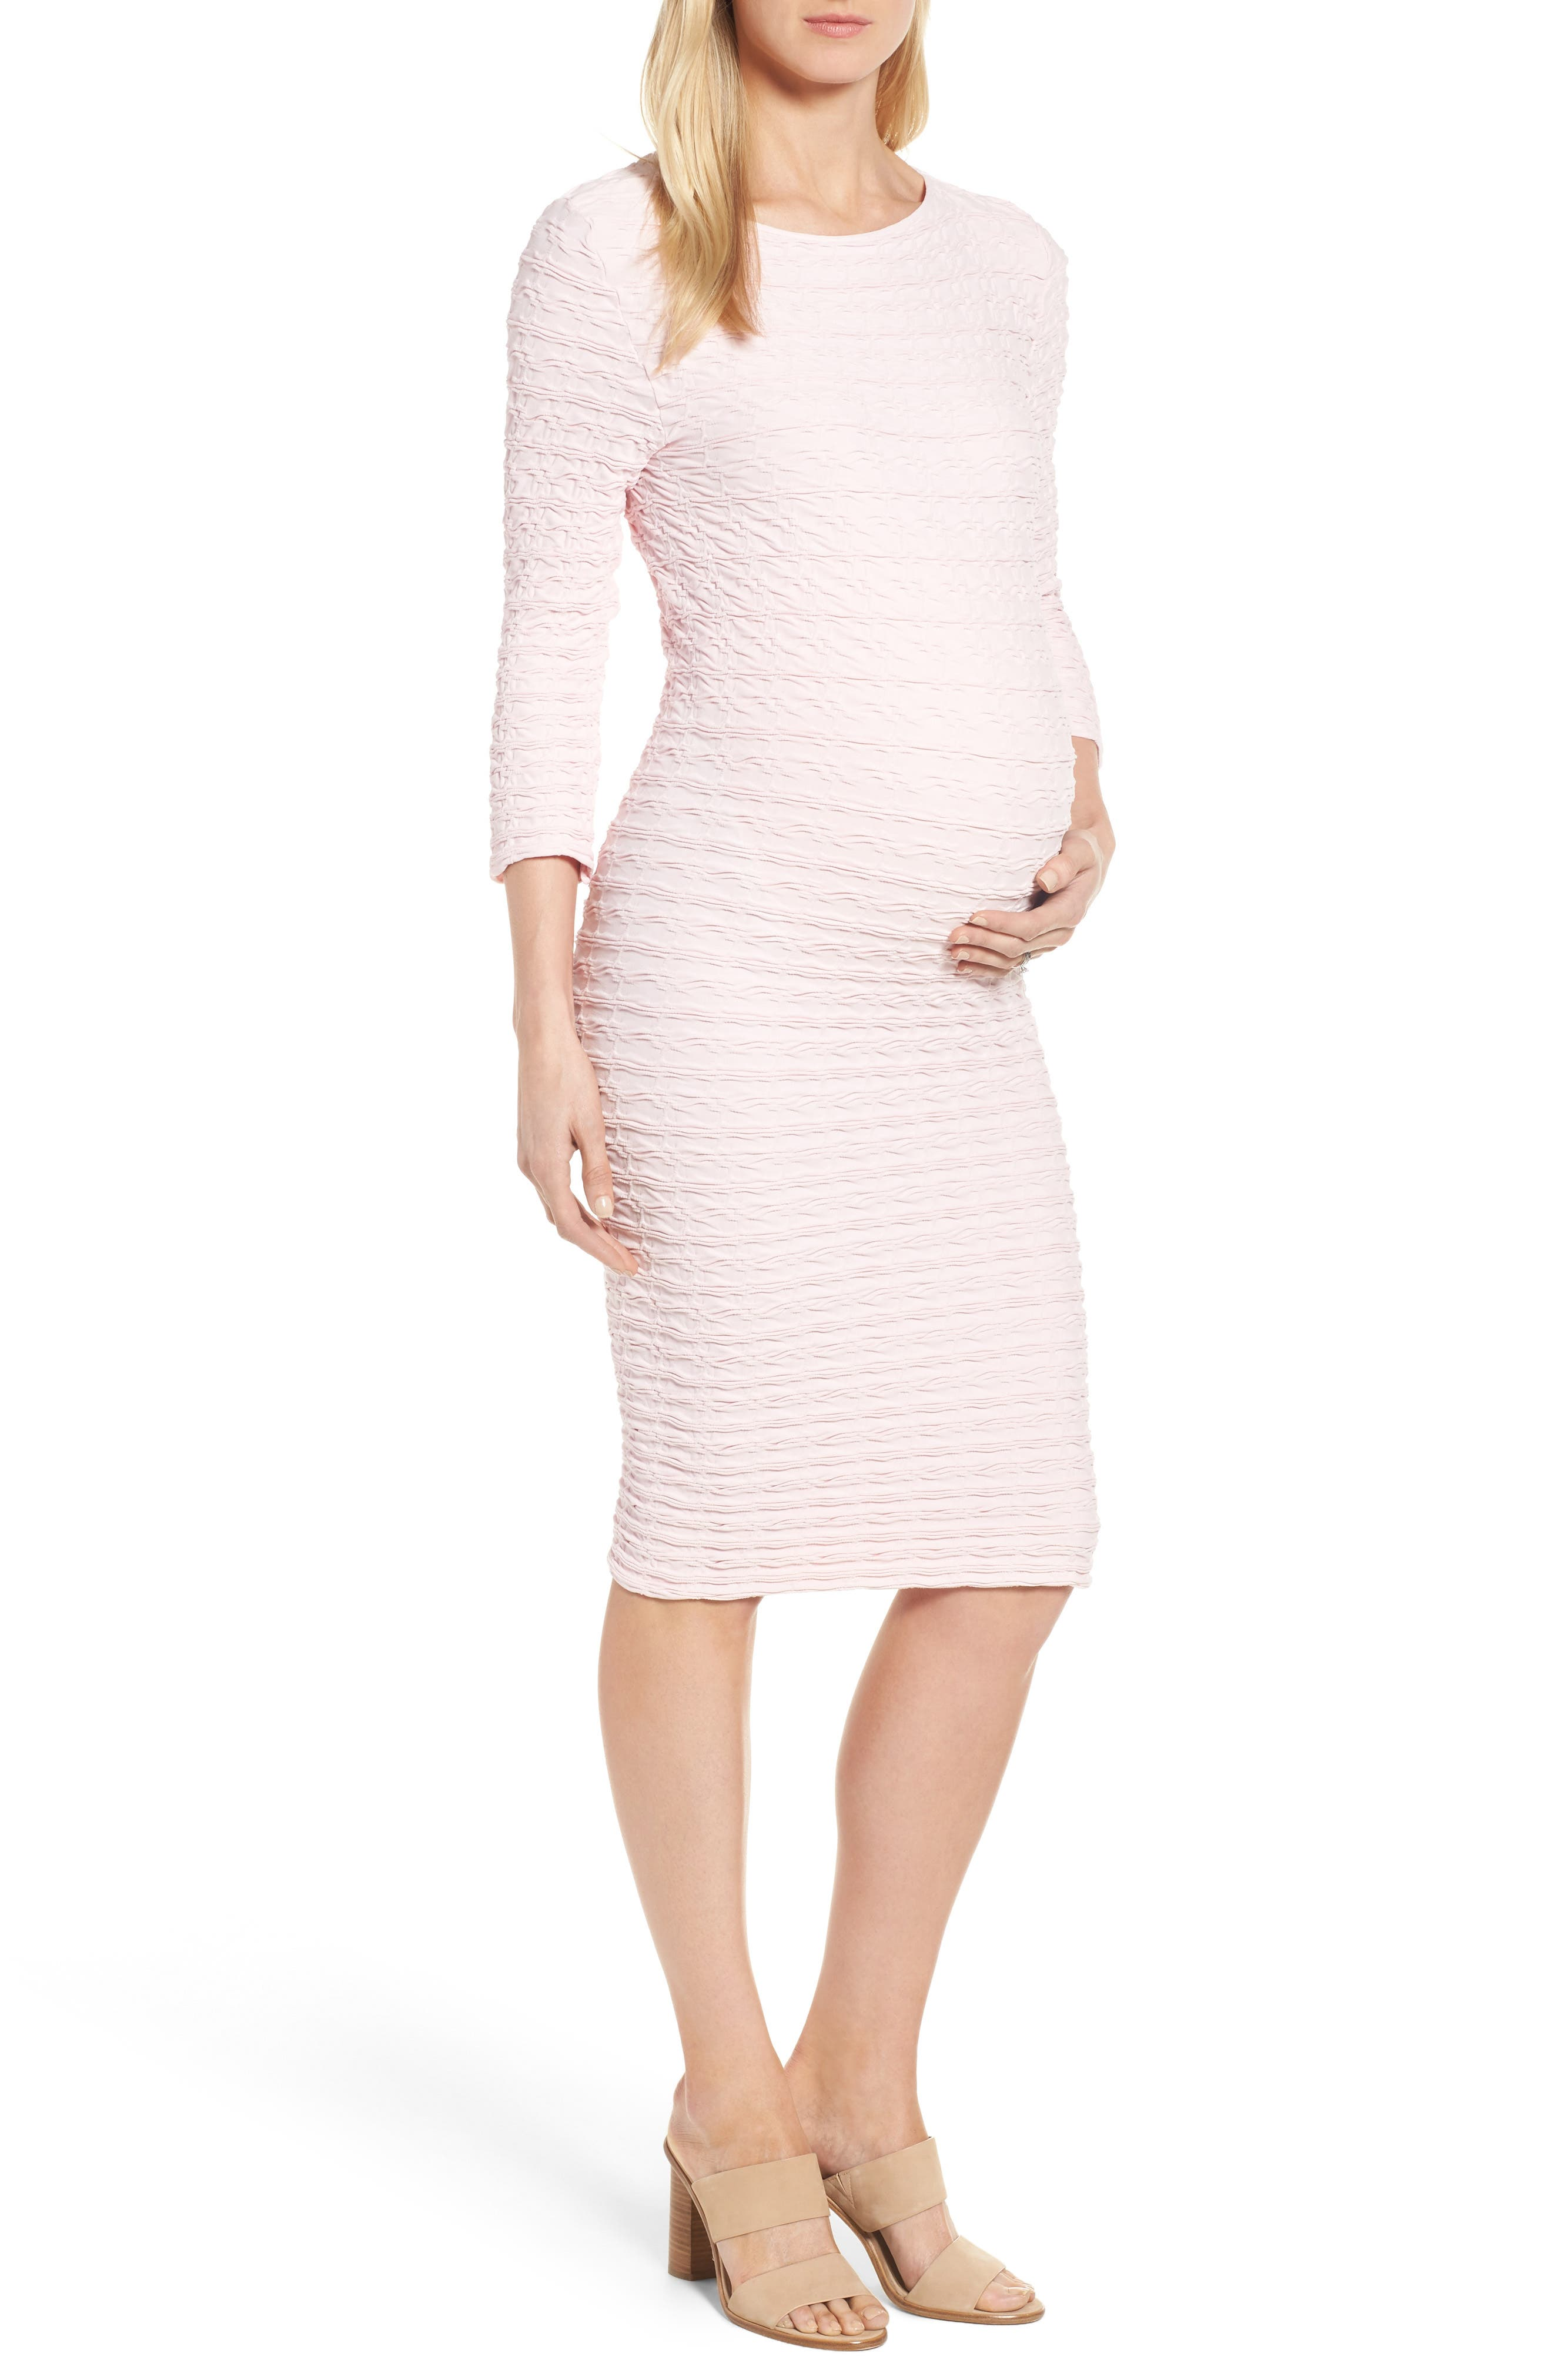 Tees by Tina 'Crinkle' Maternity Midi Dress